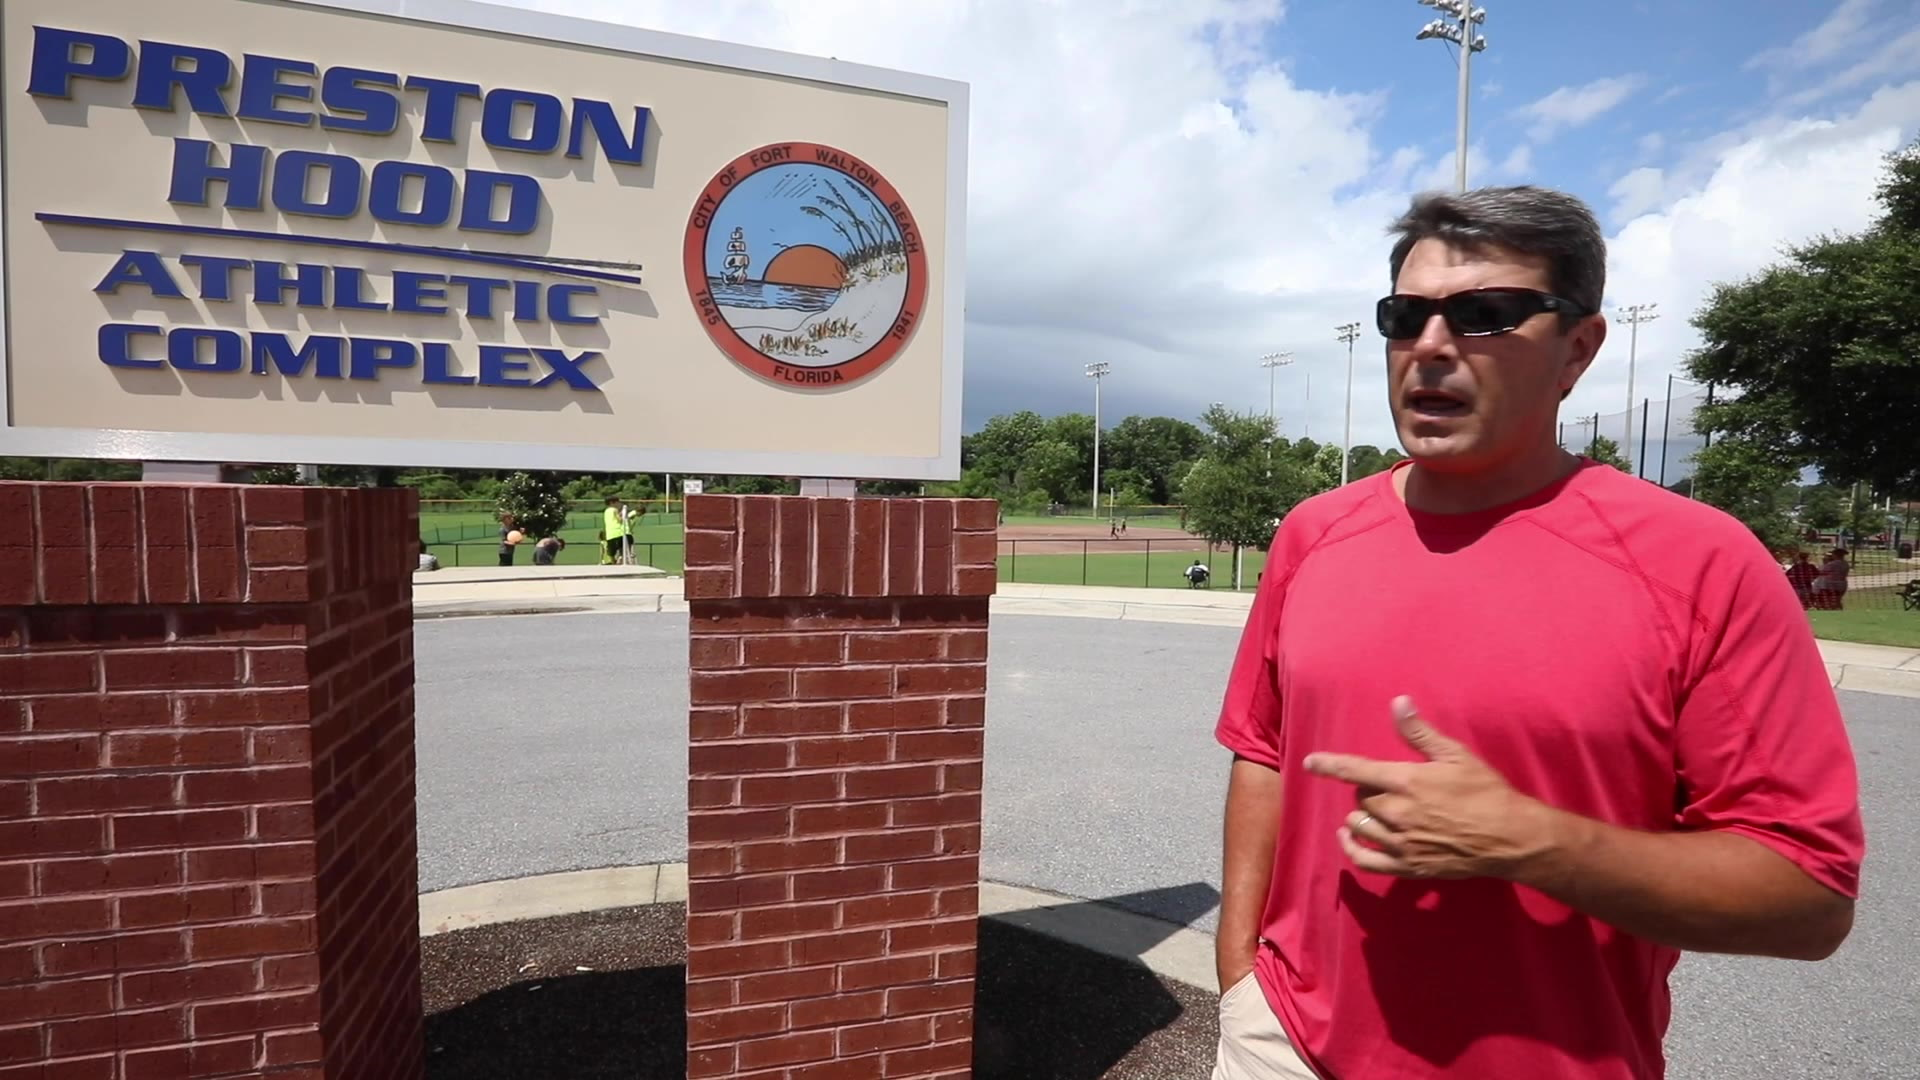 Jeff Peters - City Fort Walton Beach Athletic Complex